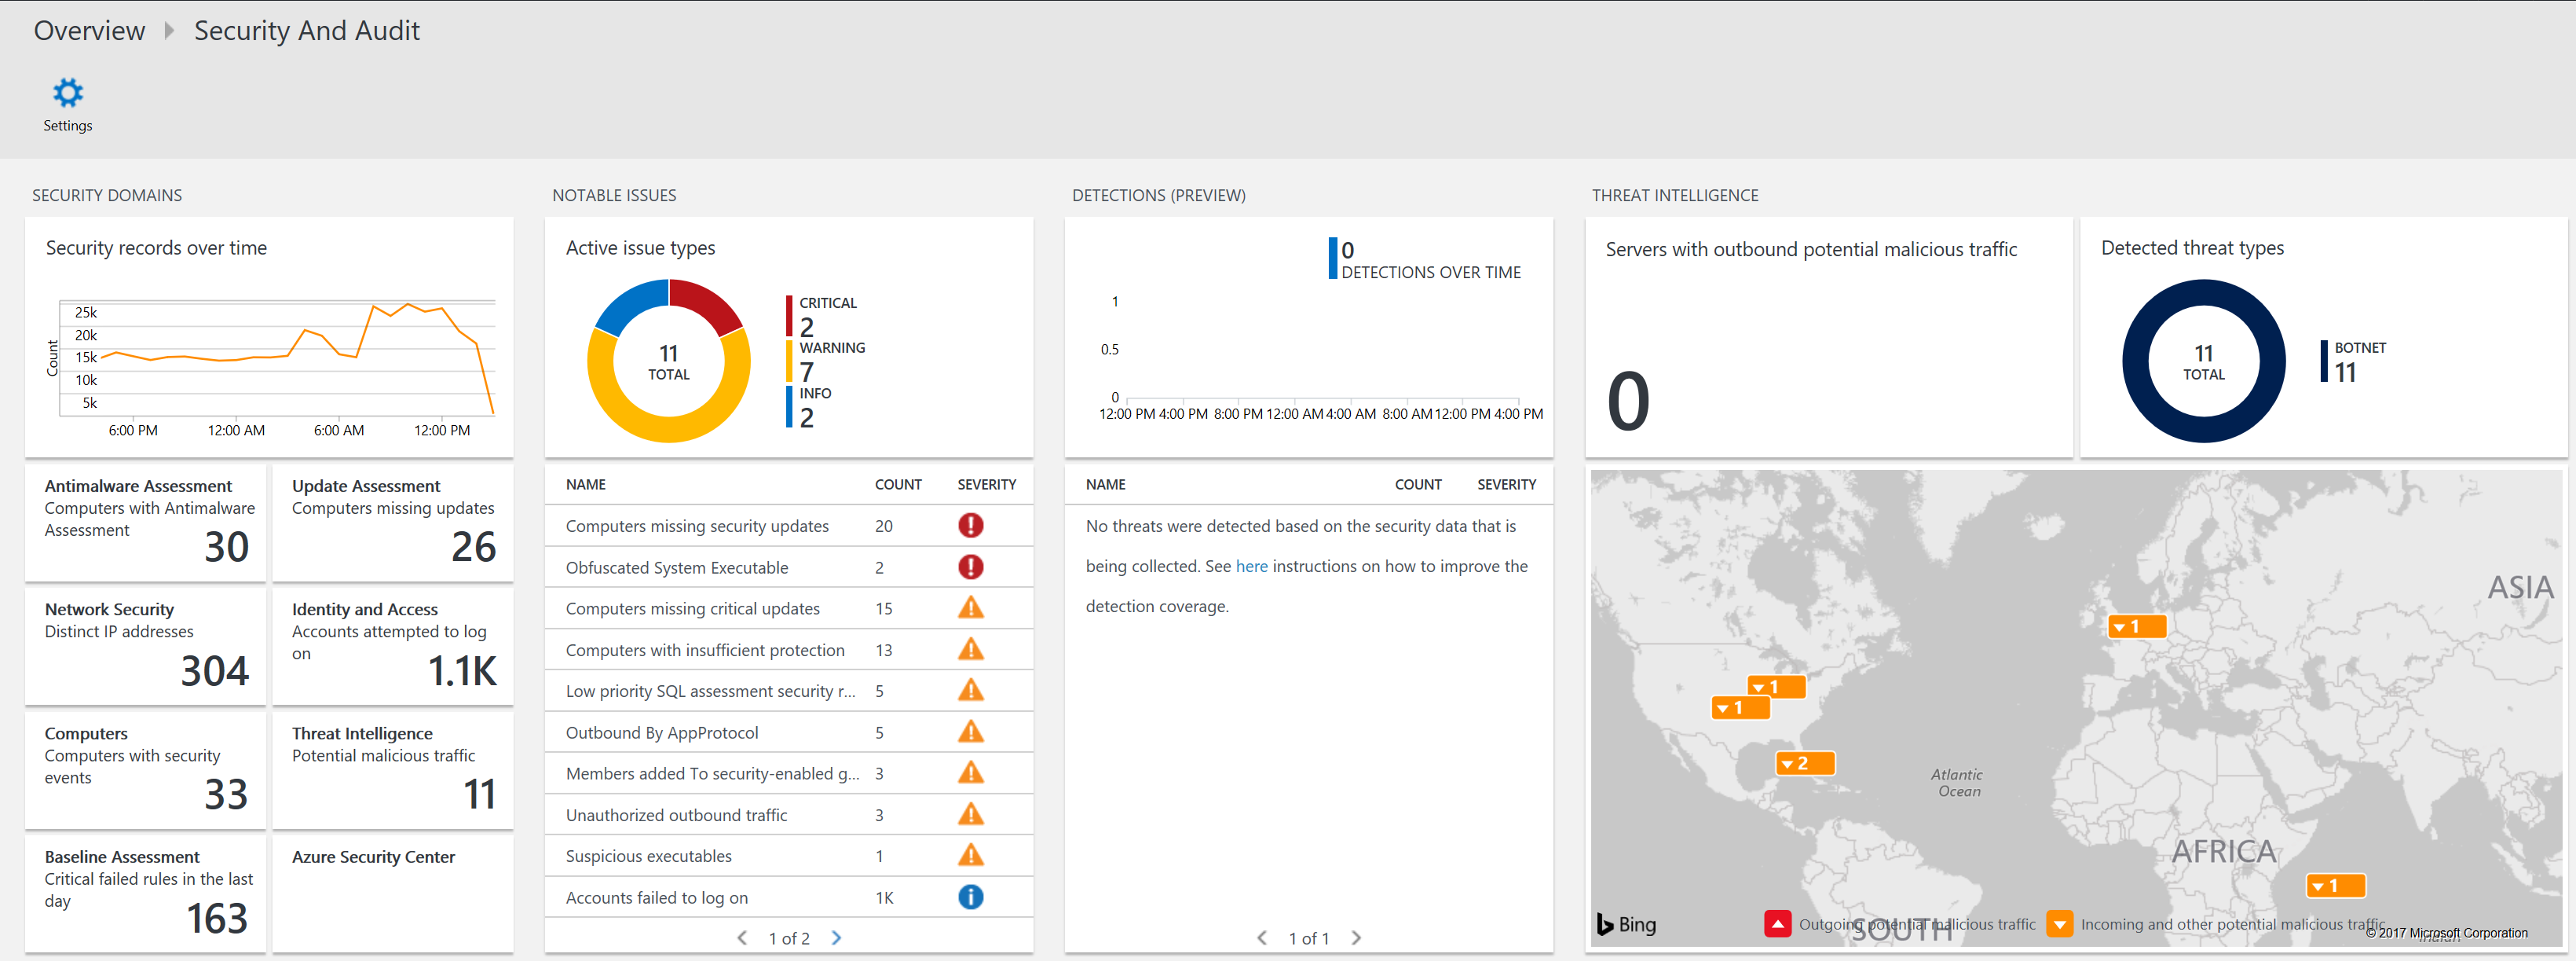 OMS - Security And Audit Dashboard